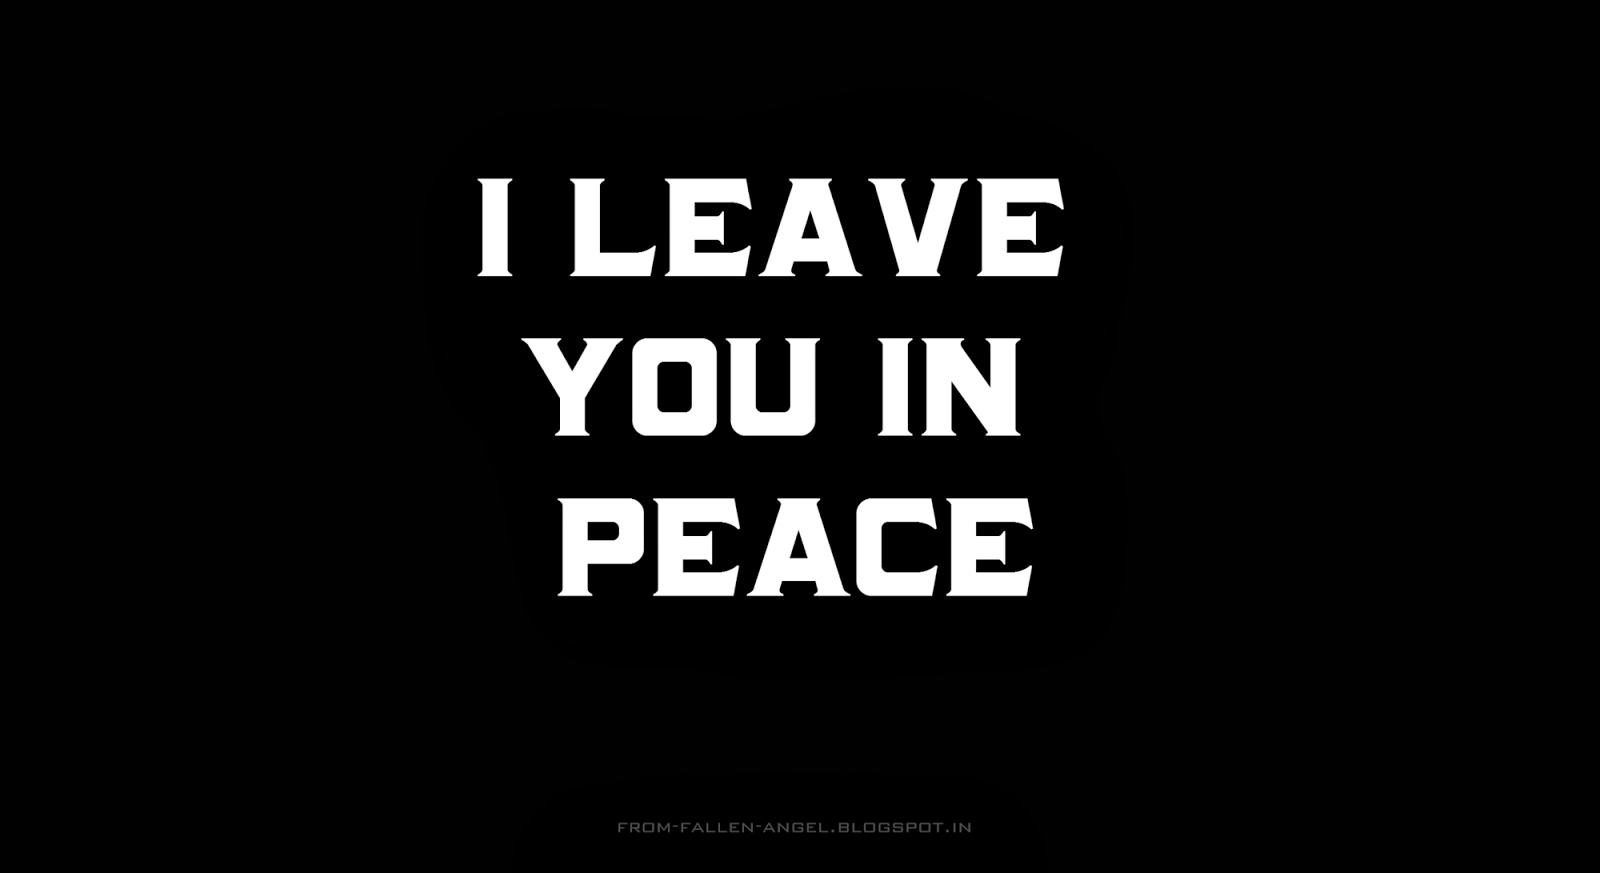 I leave you in peace